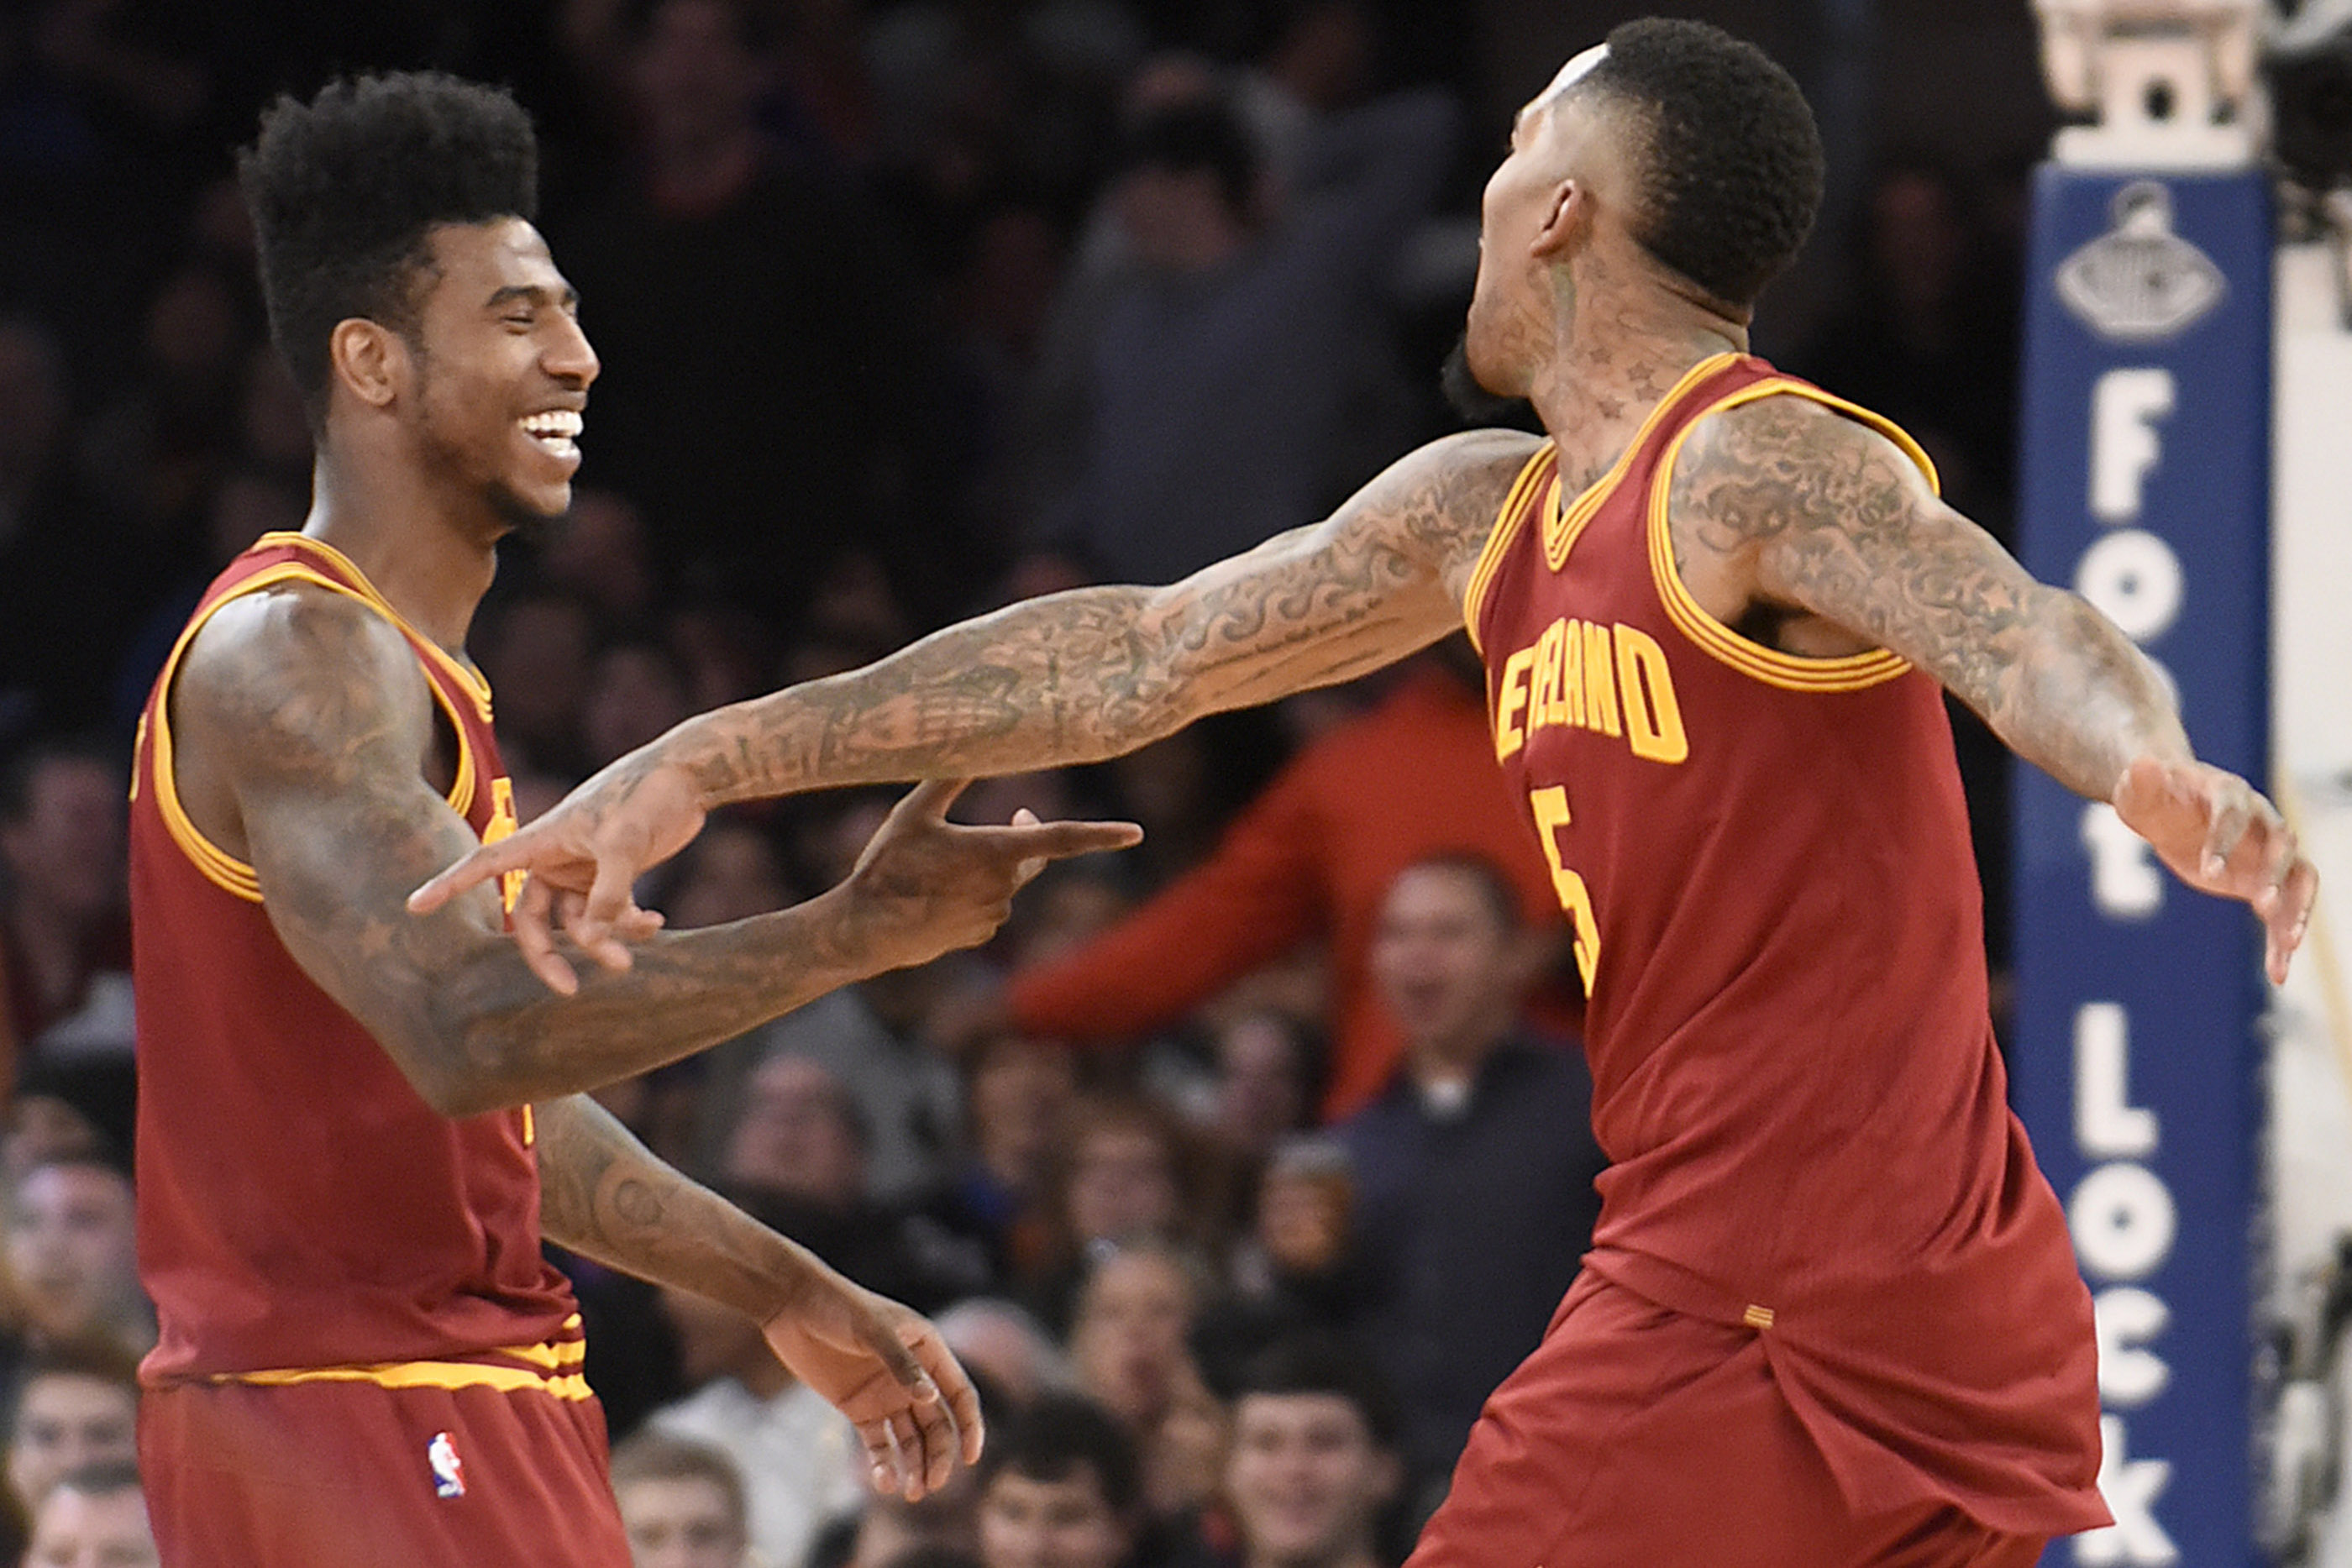 02/22/14 -Cleveland Cavaliers vs. New York Knicks. Cavs J.R. Smith is greeted by Iman Shumpert after making a reverse dunk during the fourth quarter. The Cavs defeated the Knicks 101-81. Photo by Bill Kostroun